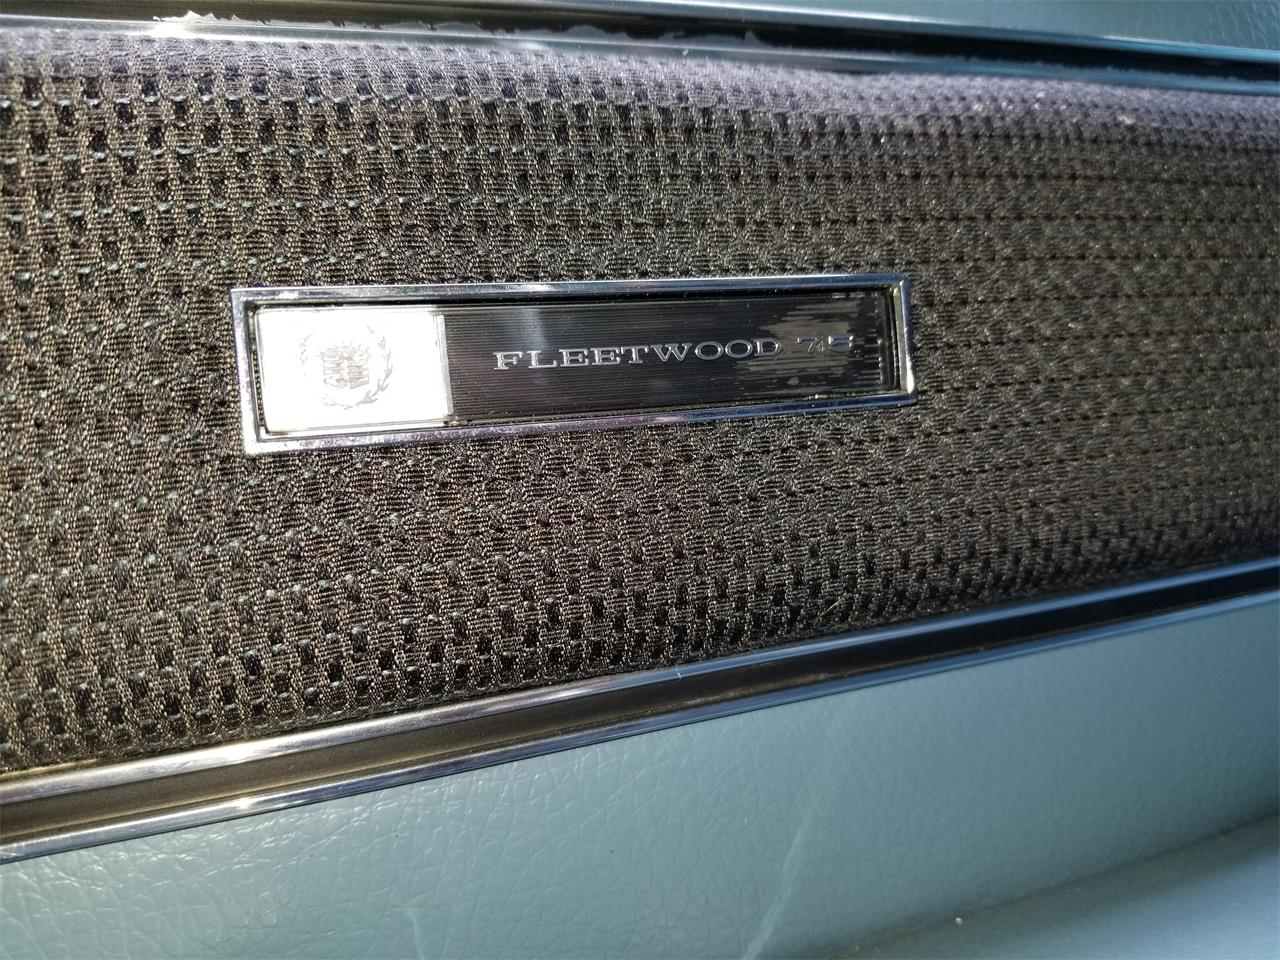 Large Picture of Classic '67 Fleetwood Limousine Offered by a Private Seller - OD55